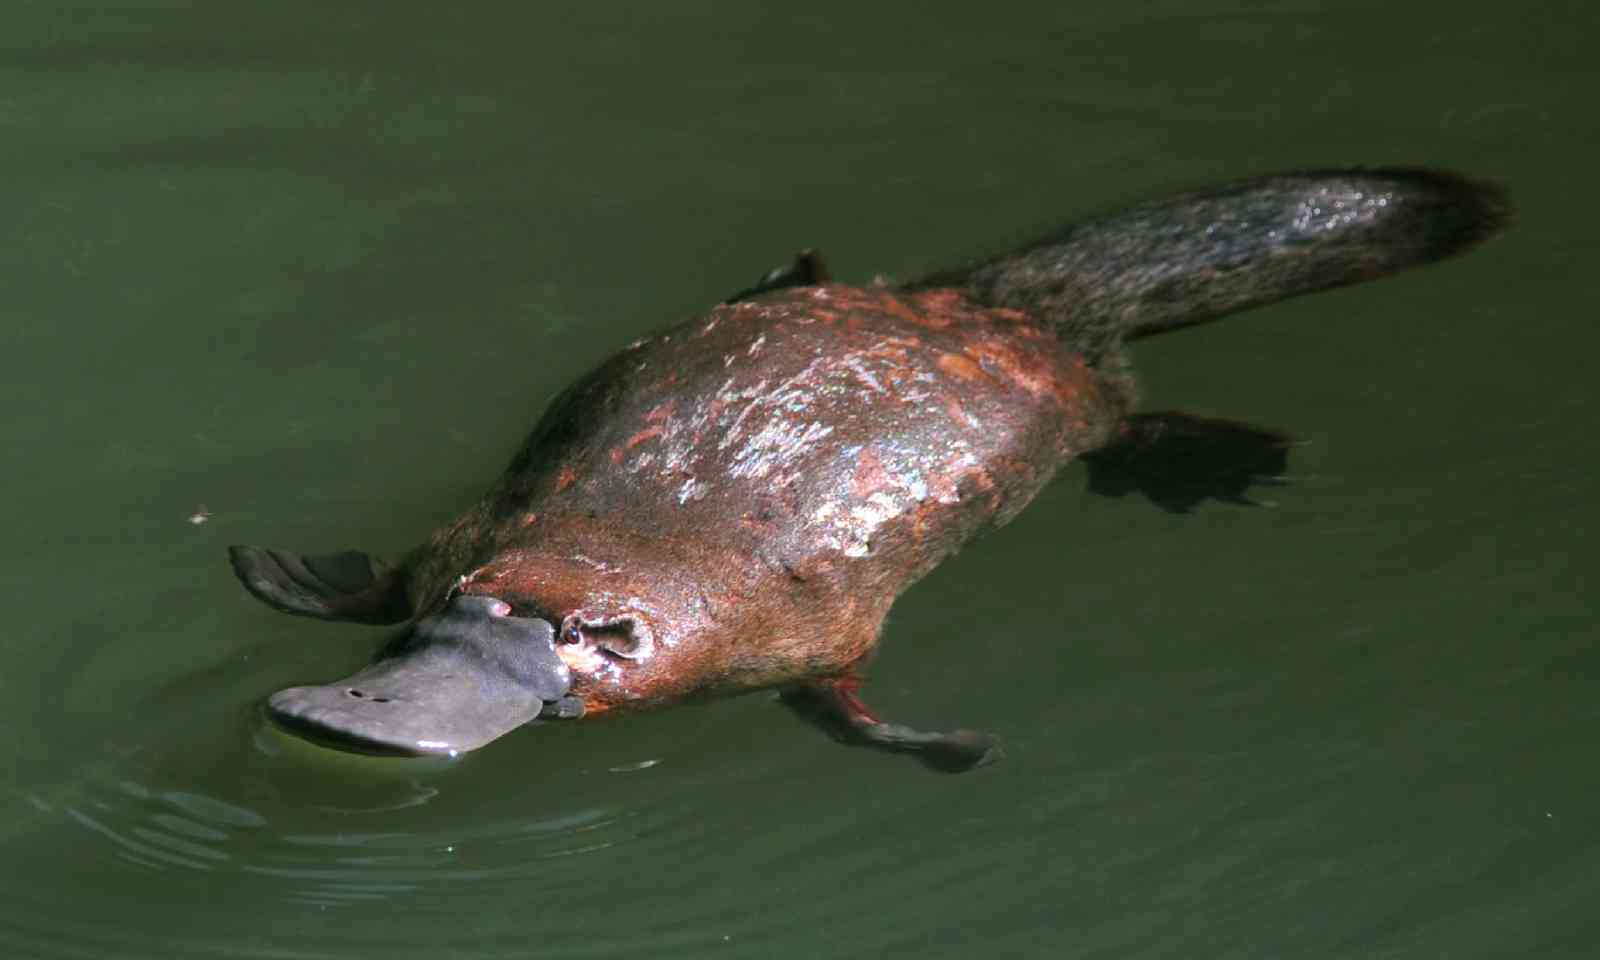 Duck-billed platypus (Shutterstock)